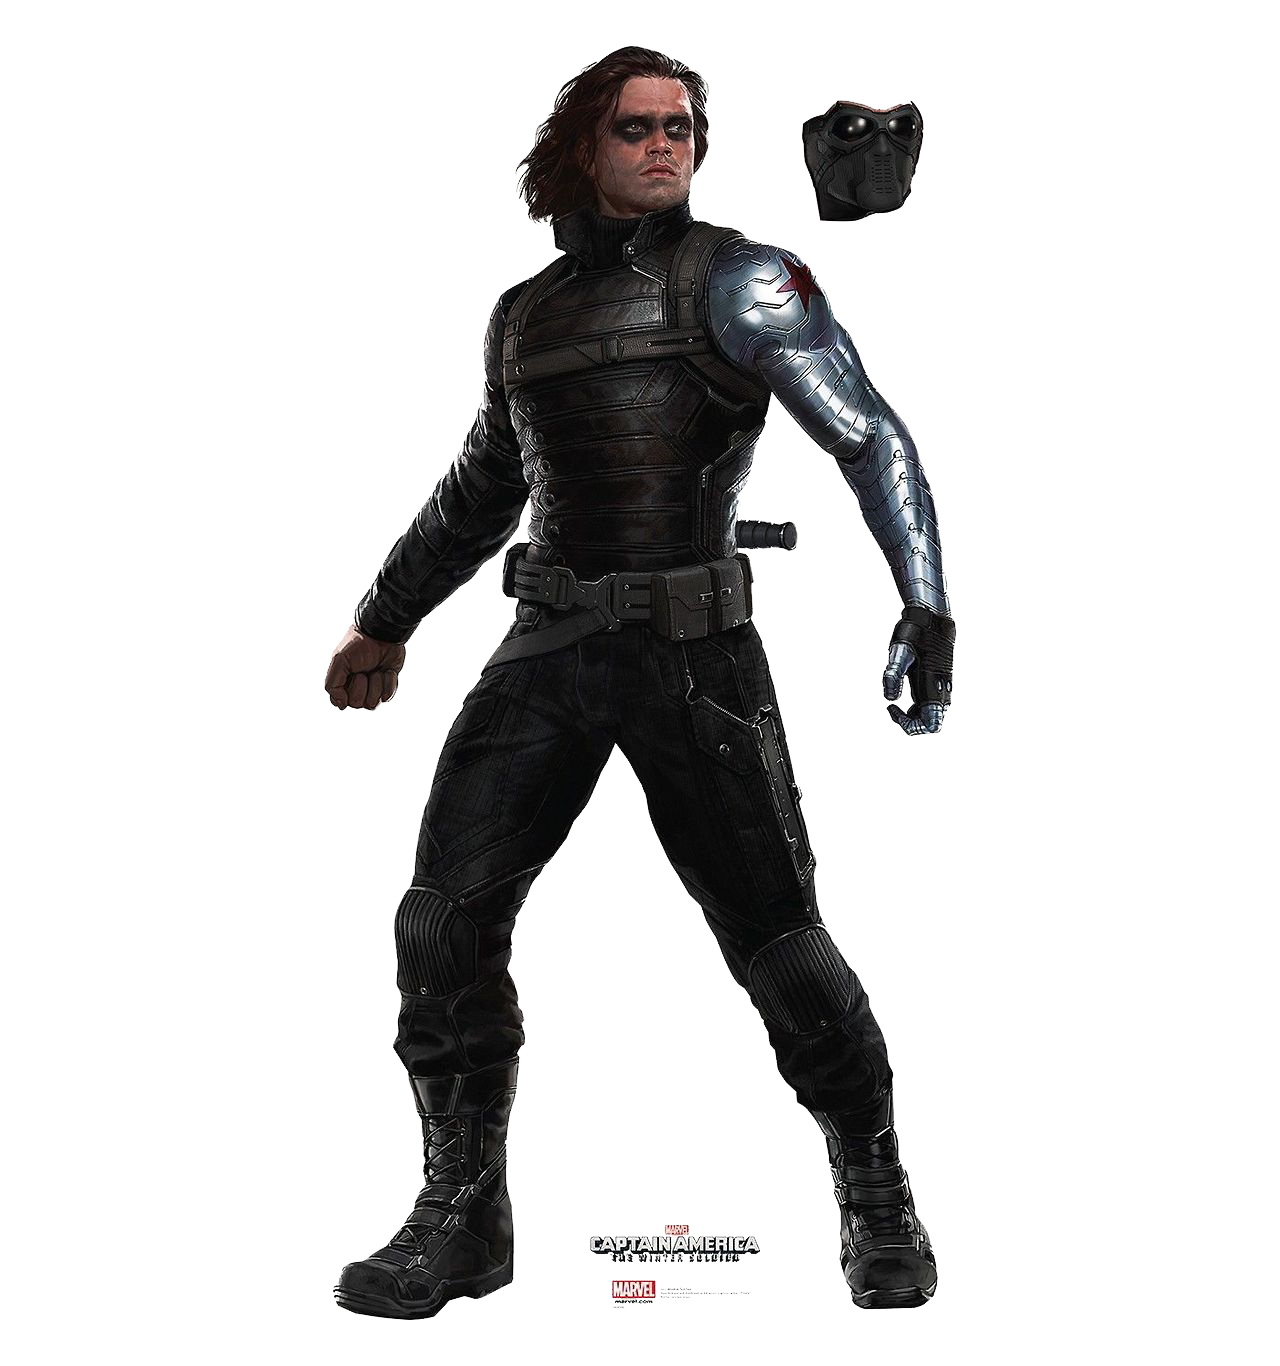 Captain america png images. Soldiers clipart solder